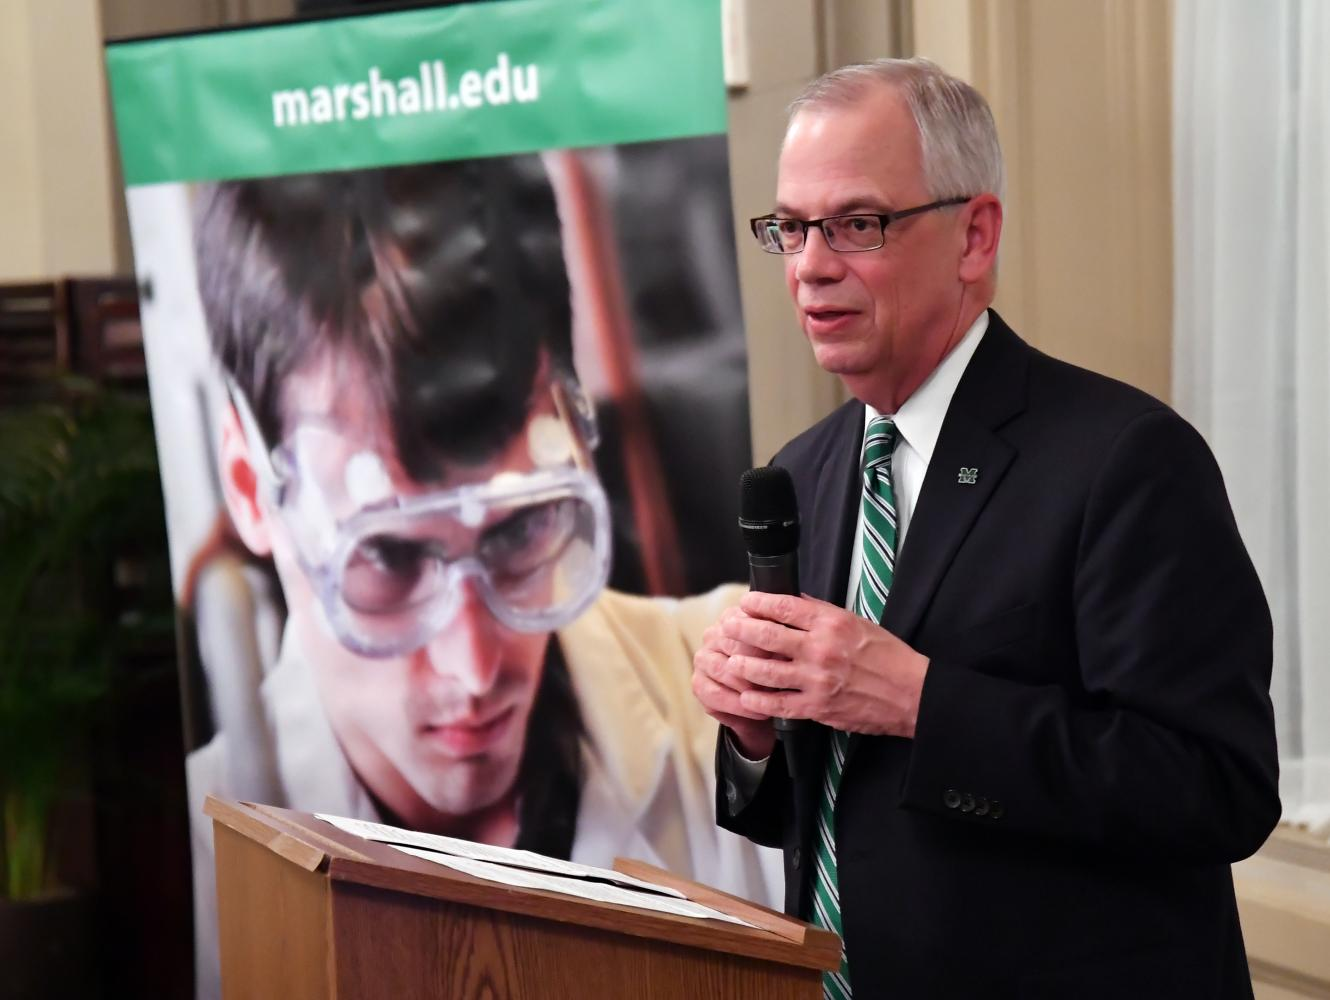 President Jerry Gilbert discusses university objectives and new marketing campaign at  April reception in honor of John Marshall in Richmond, VA.